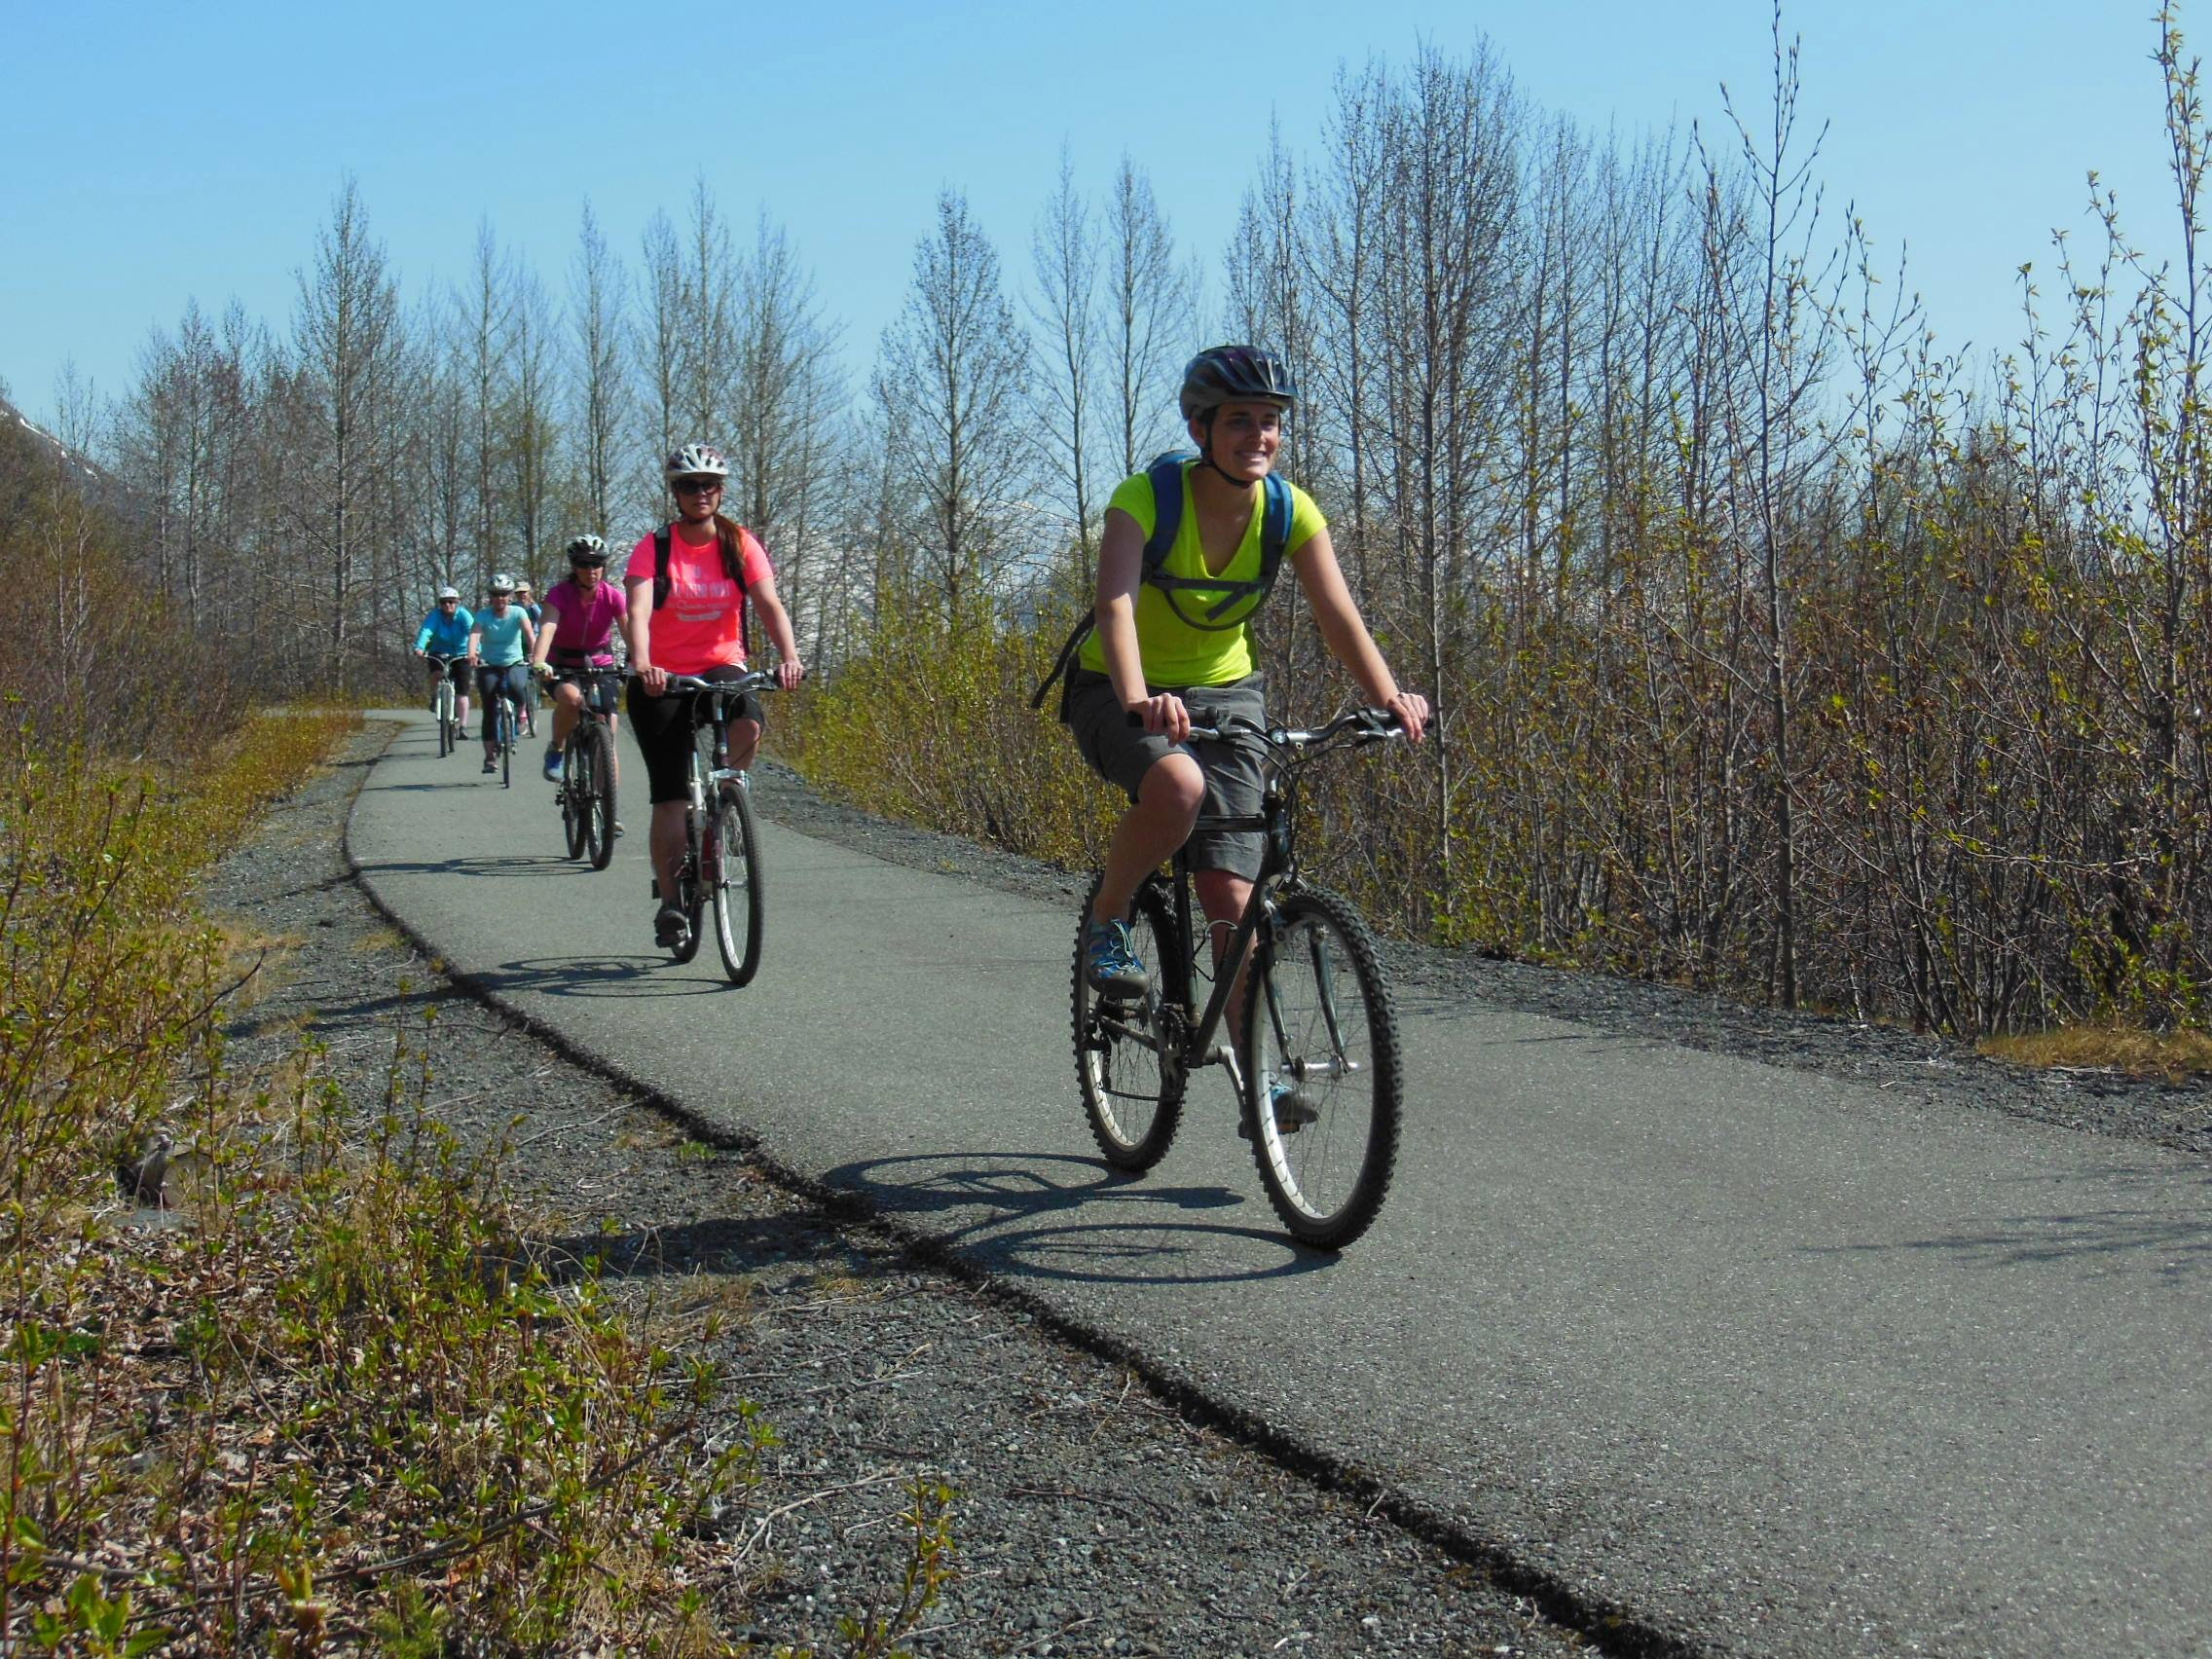 photo: Bicyclists enoying spring sunshine on the Bird-to-Gird Trail near Anchorage. Photo by Susan Sommer.